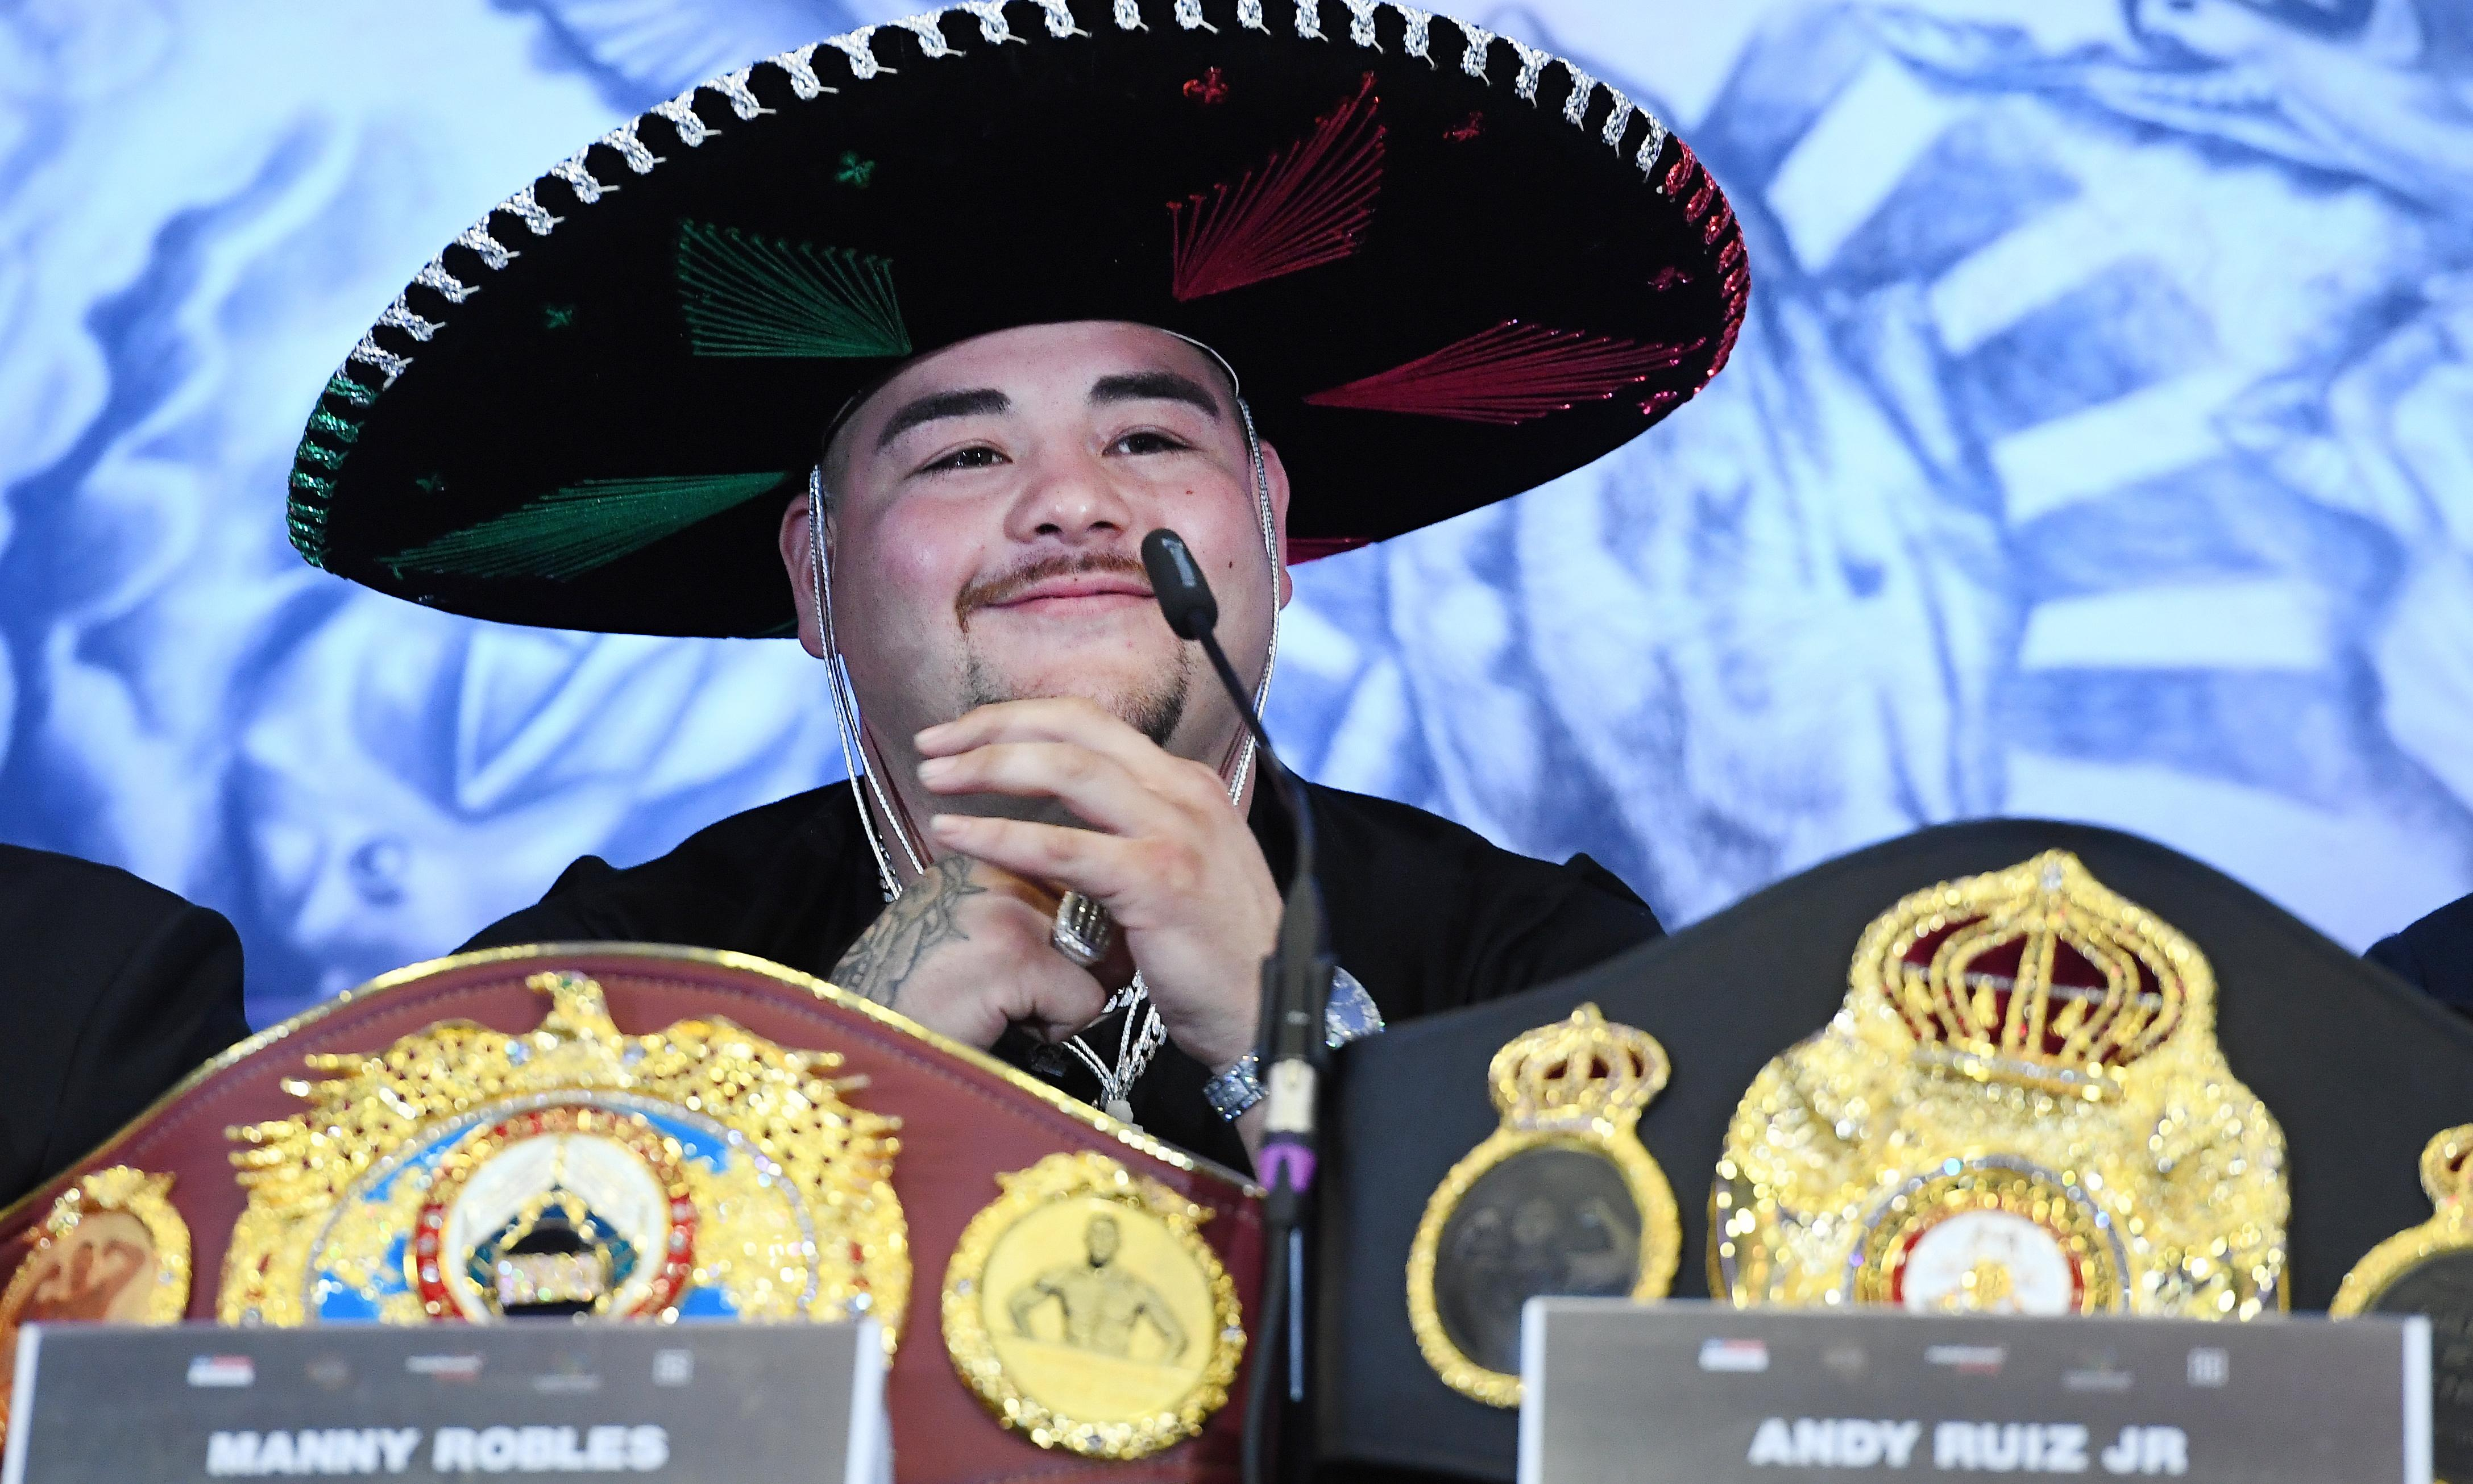 'Warrior' Andy Ruiz Jr expects 'same result' from Anthony Joshua rematch